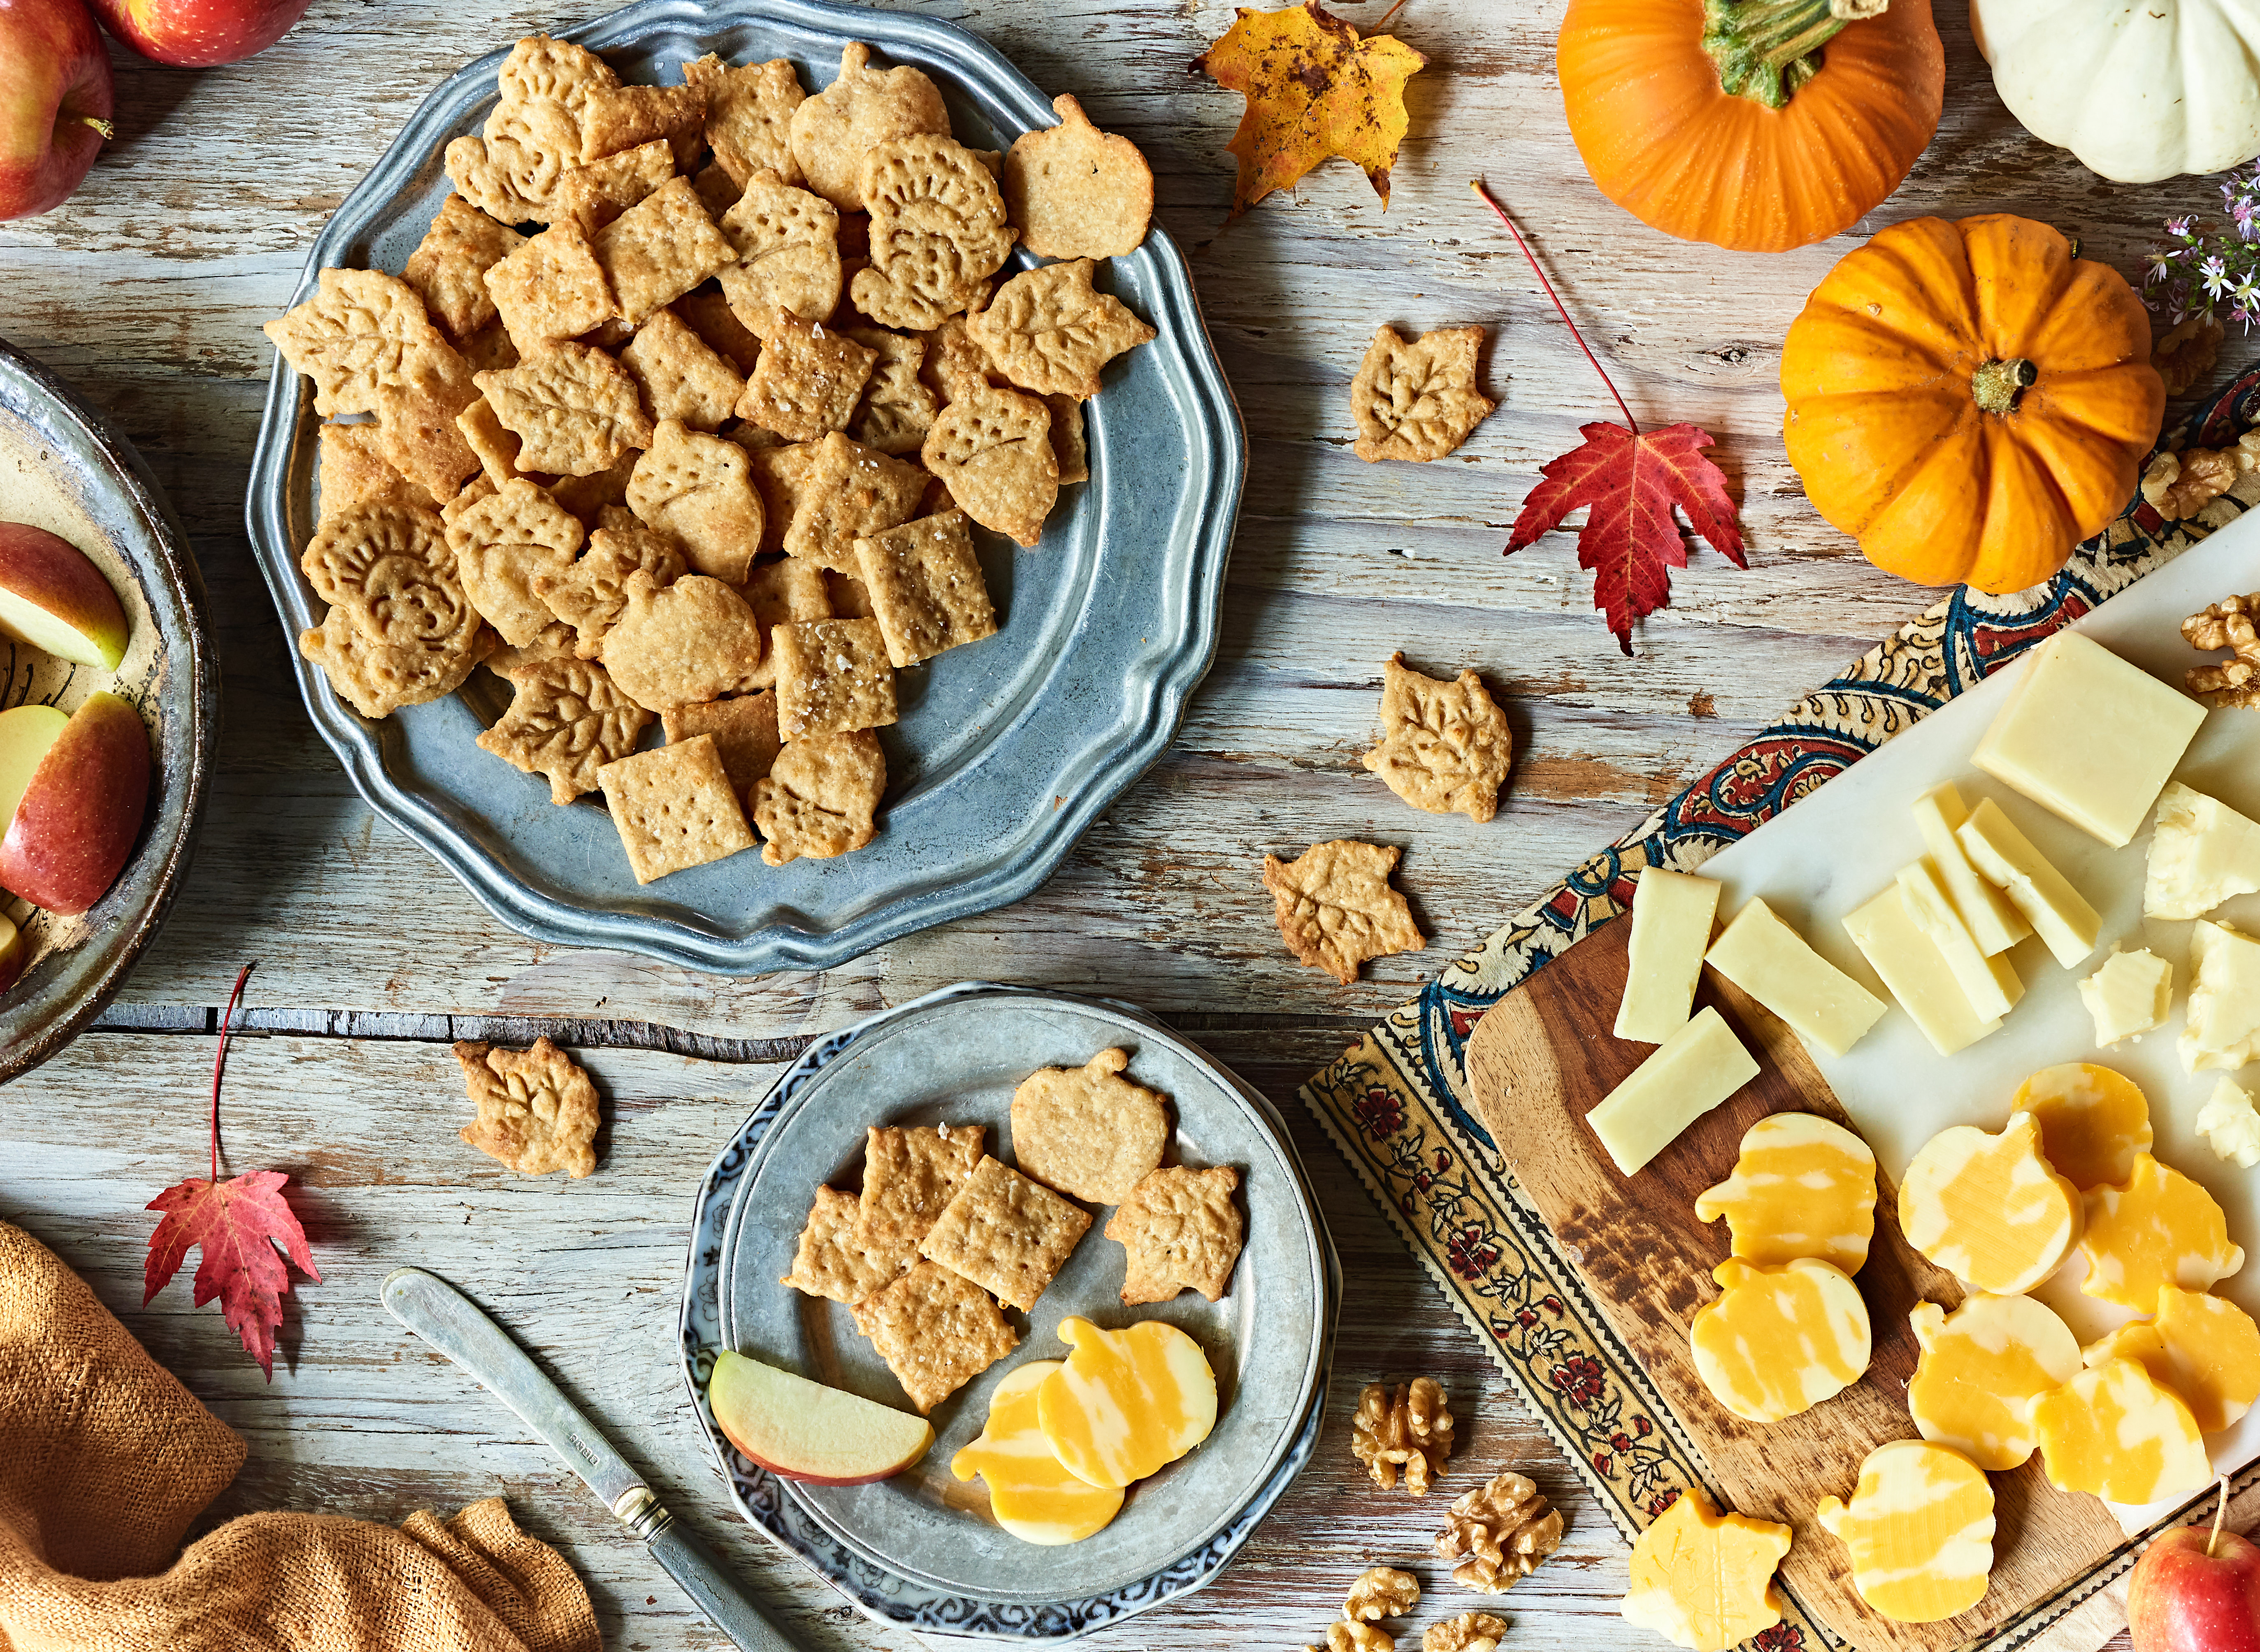 Festive Fall Cheesy Crackers with Cabot Cheddar